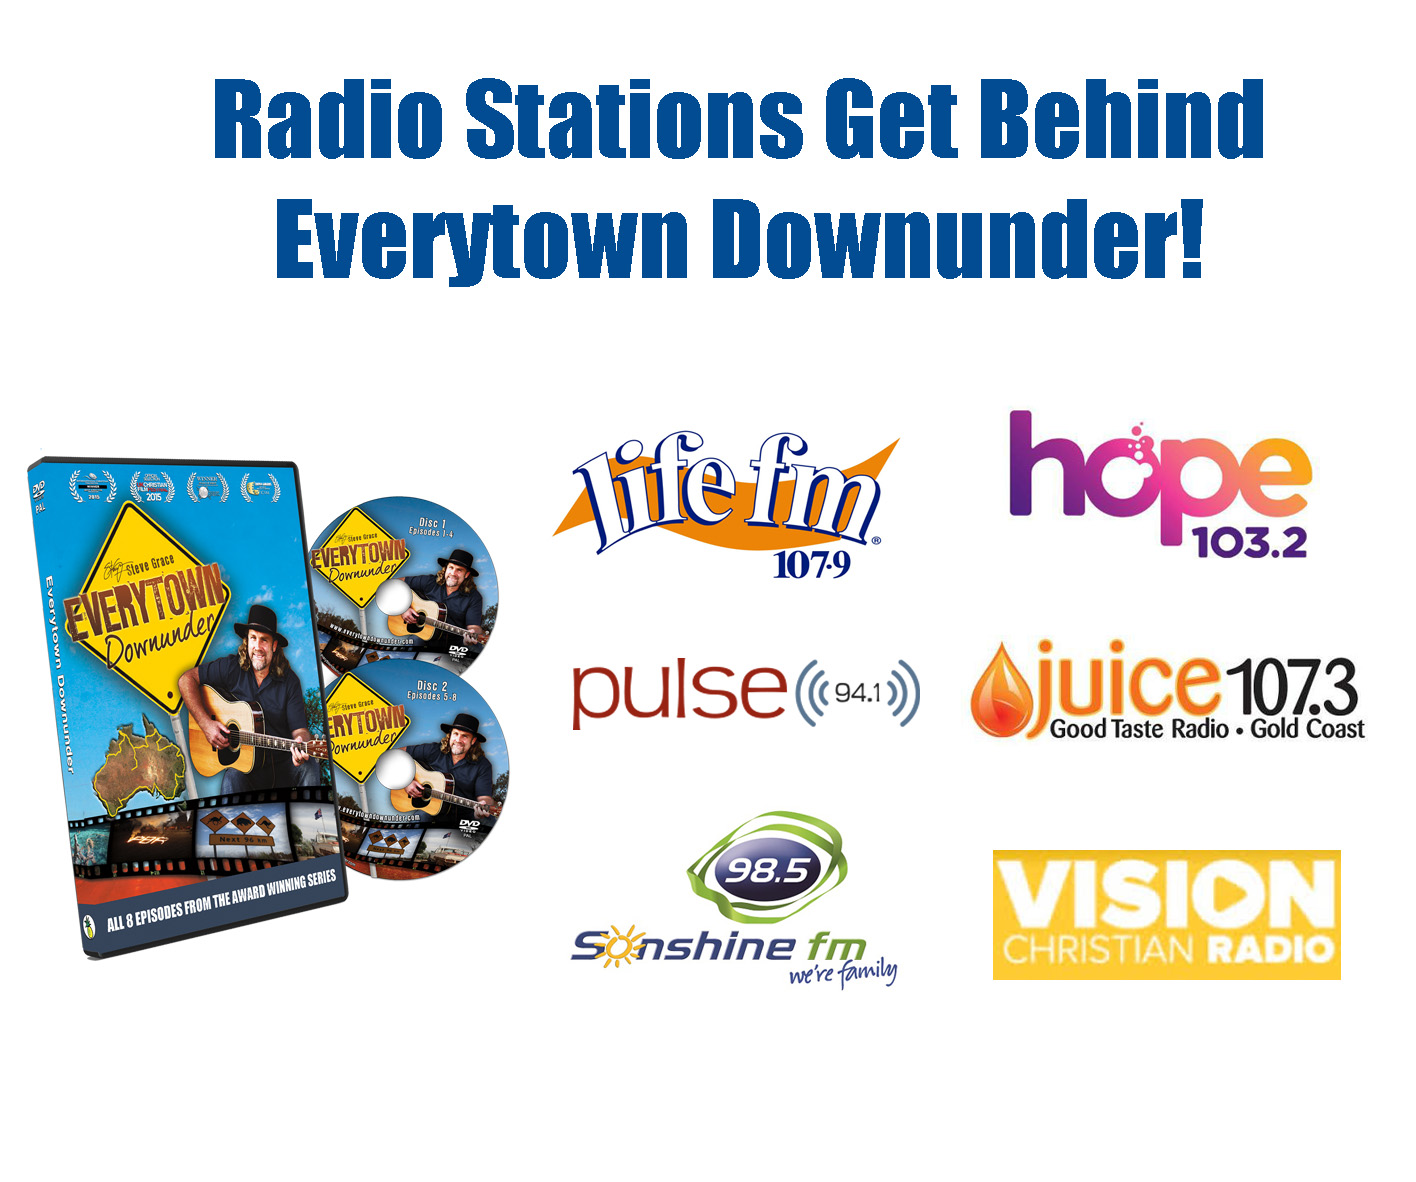 EVERYTOWN DOWNUNDER SUPPORTED BY RADIO STATIONS